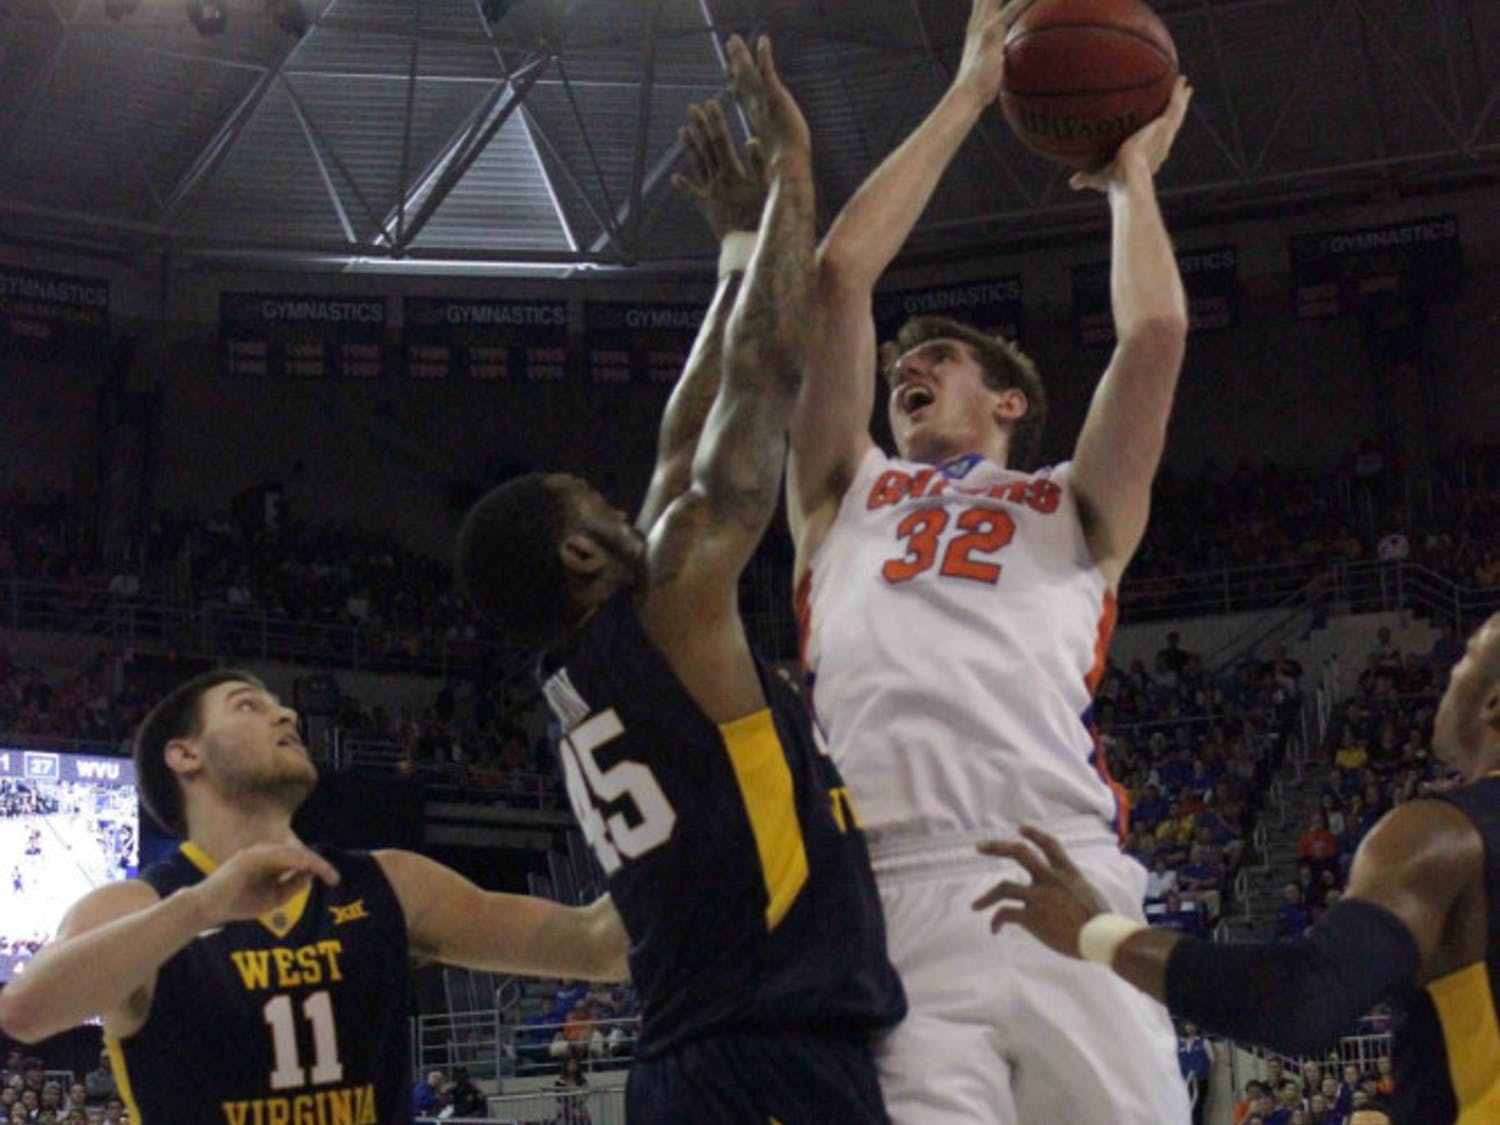 Schuyler Rimmer goes for a layup during Florida's win over West Virginia on Jan. 30, 2016, in the O'Connell Center.